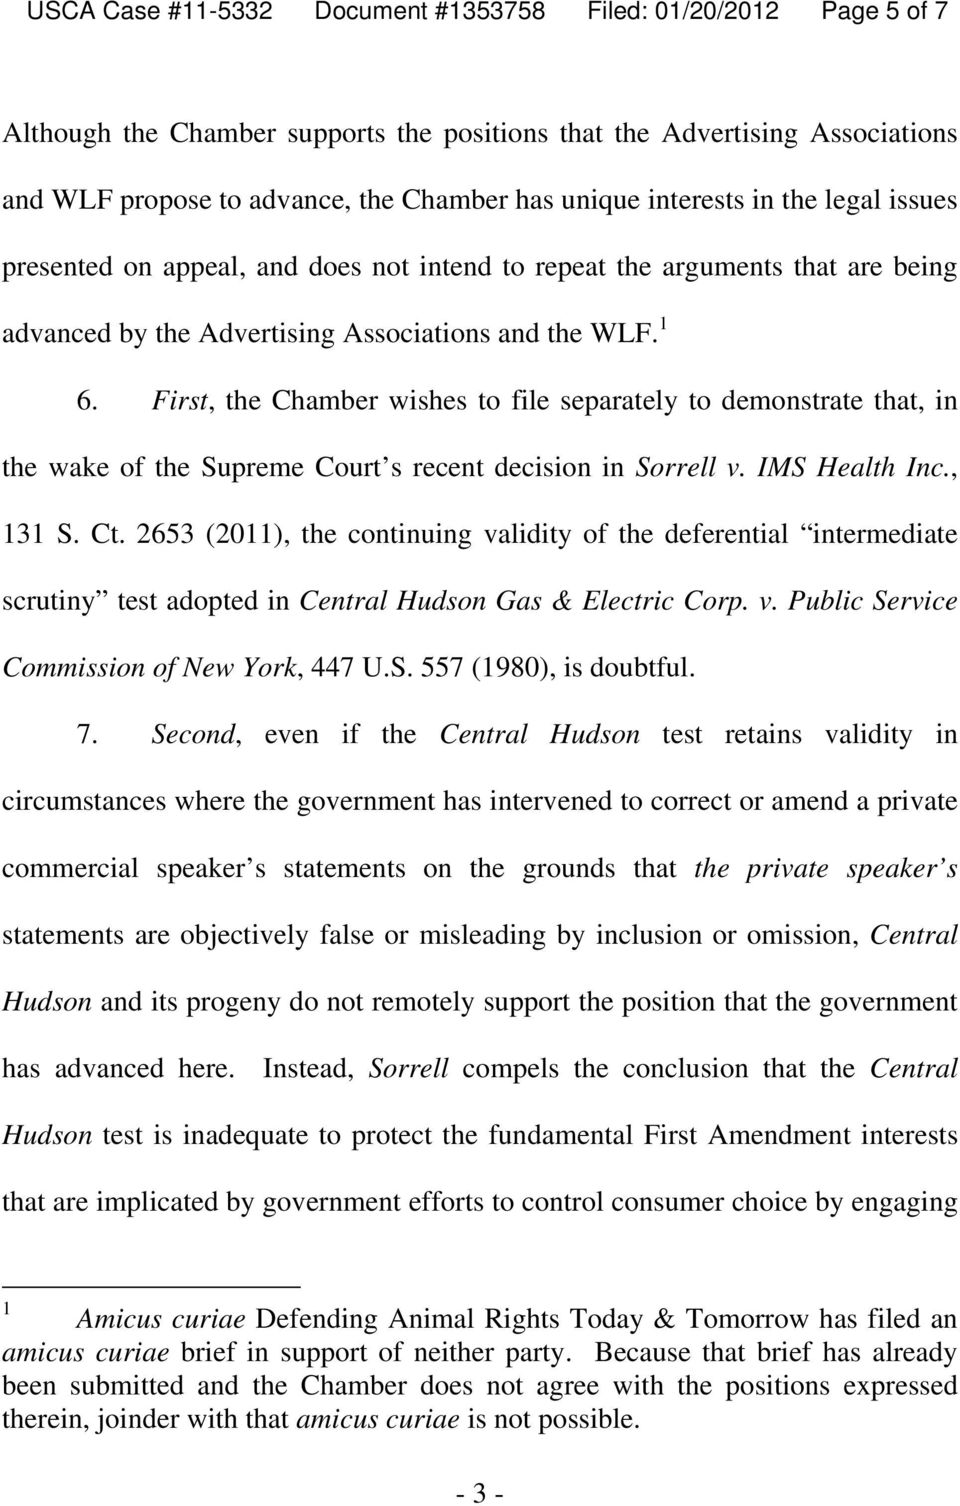 First, the Chamber wishes to file separately to demonstrate that, in the wake of the Supreme Court s recent decision in Sorrell v. IMS Health Inc., 131 S. Ct.